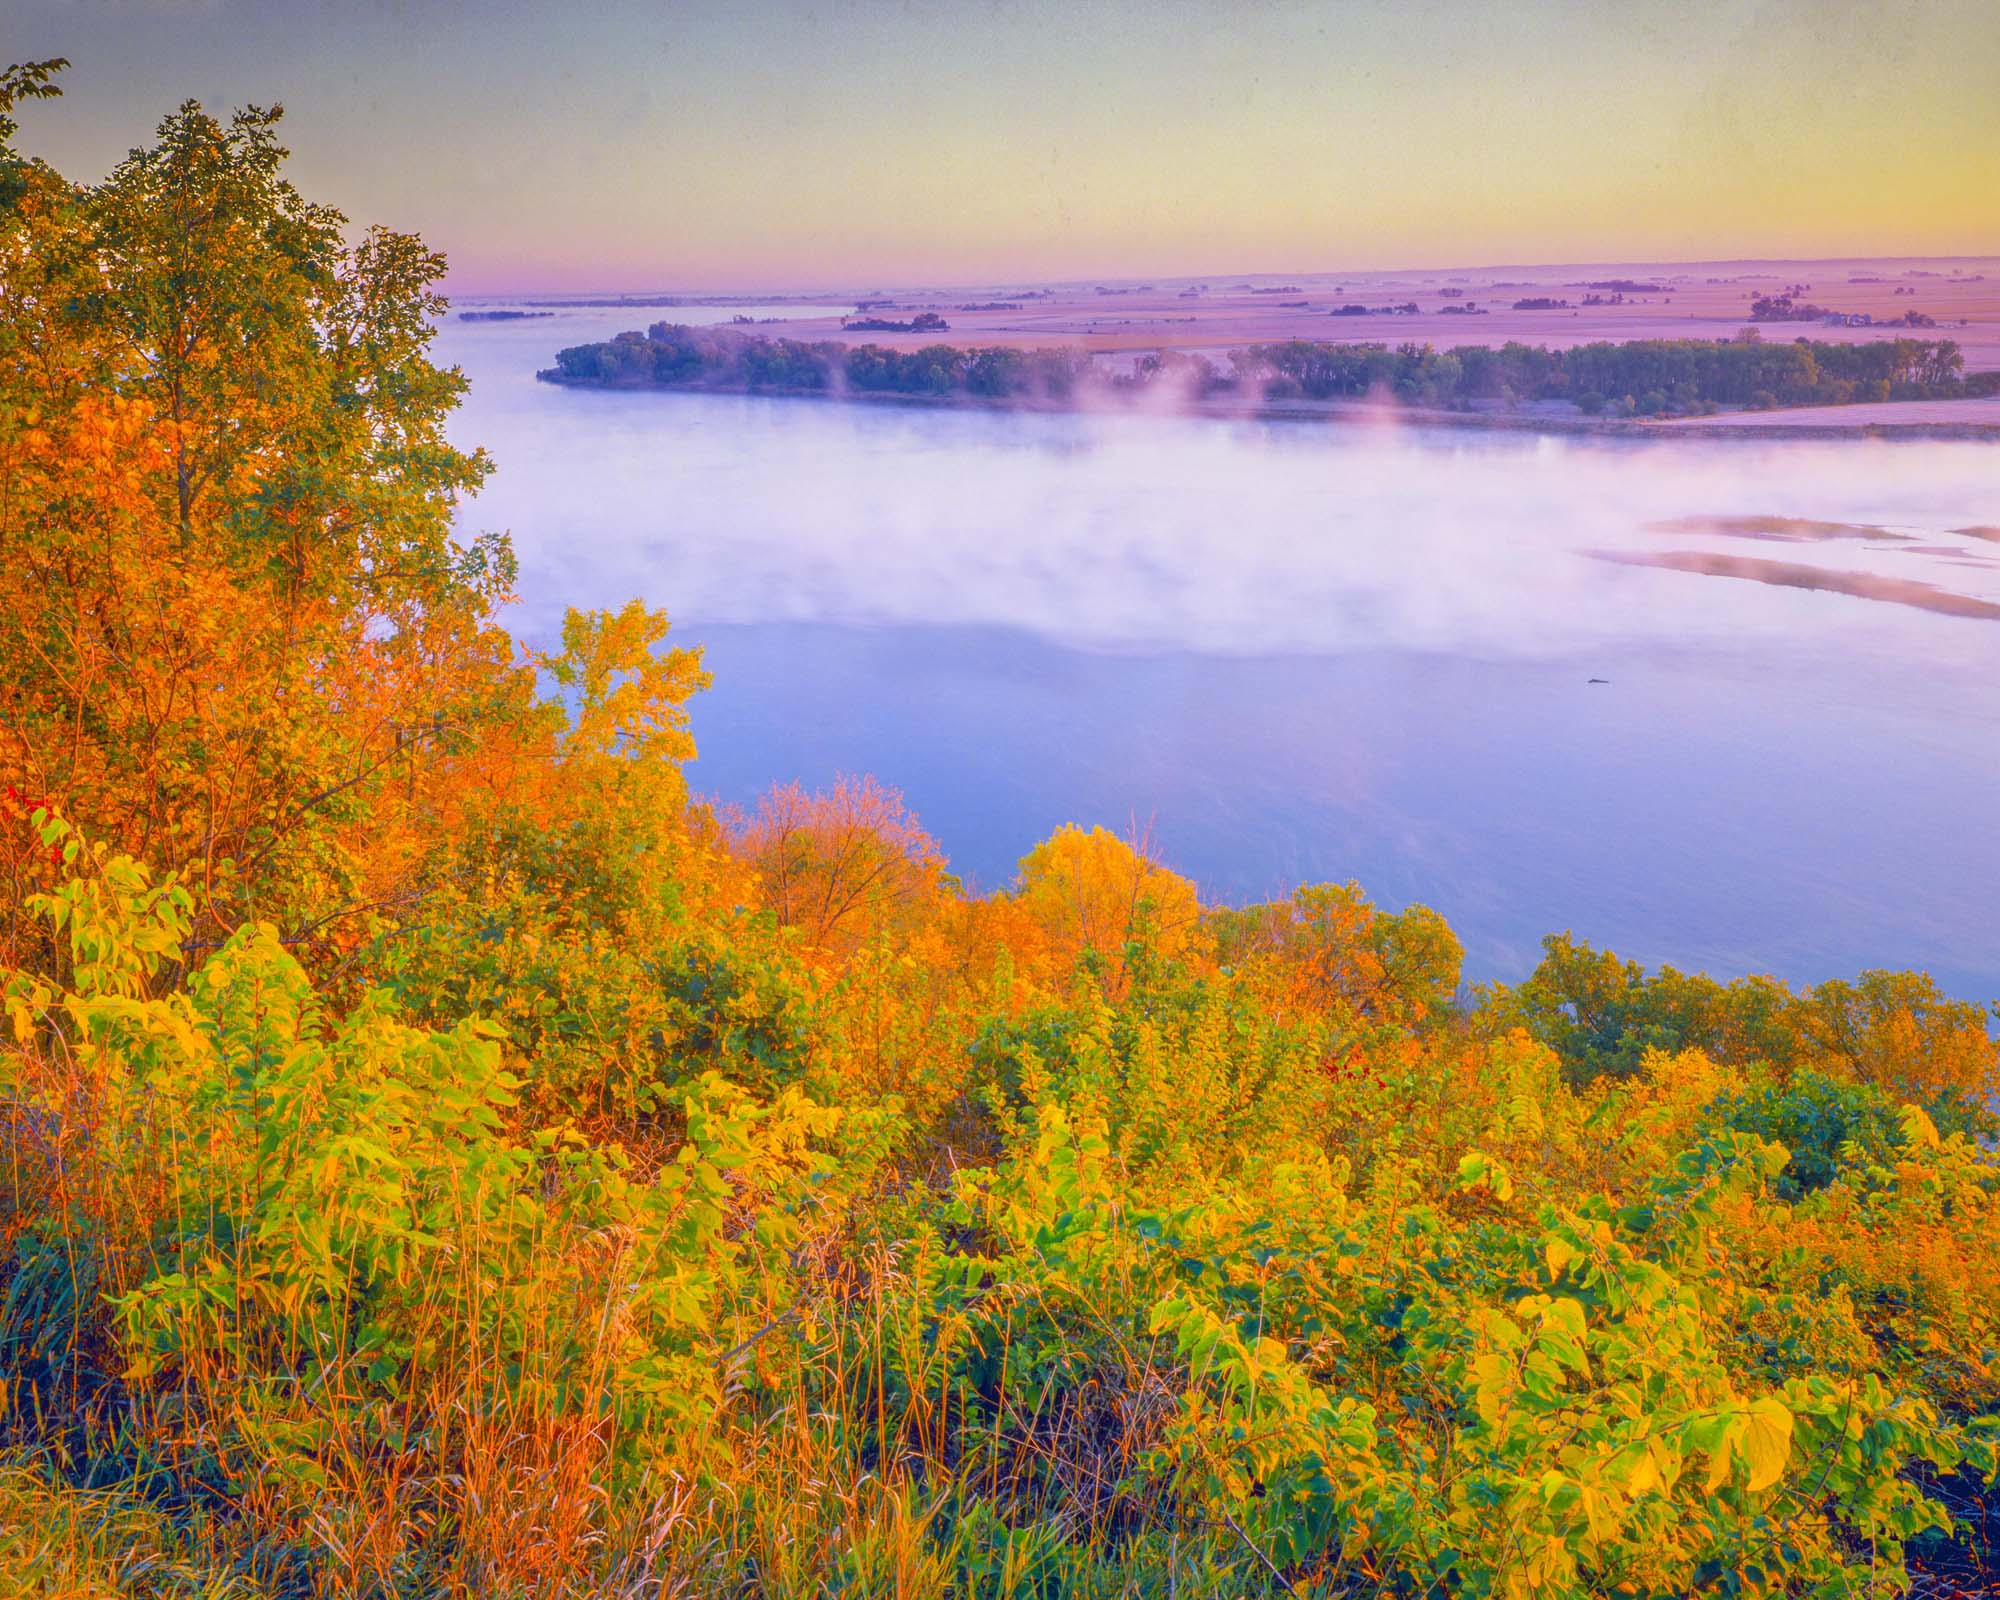 Iowa, South Dakota, Missouri River from the Overlook at Ponca State Park photographed by Tom Till